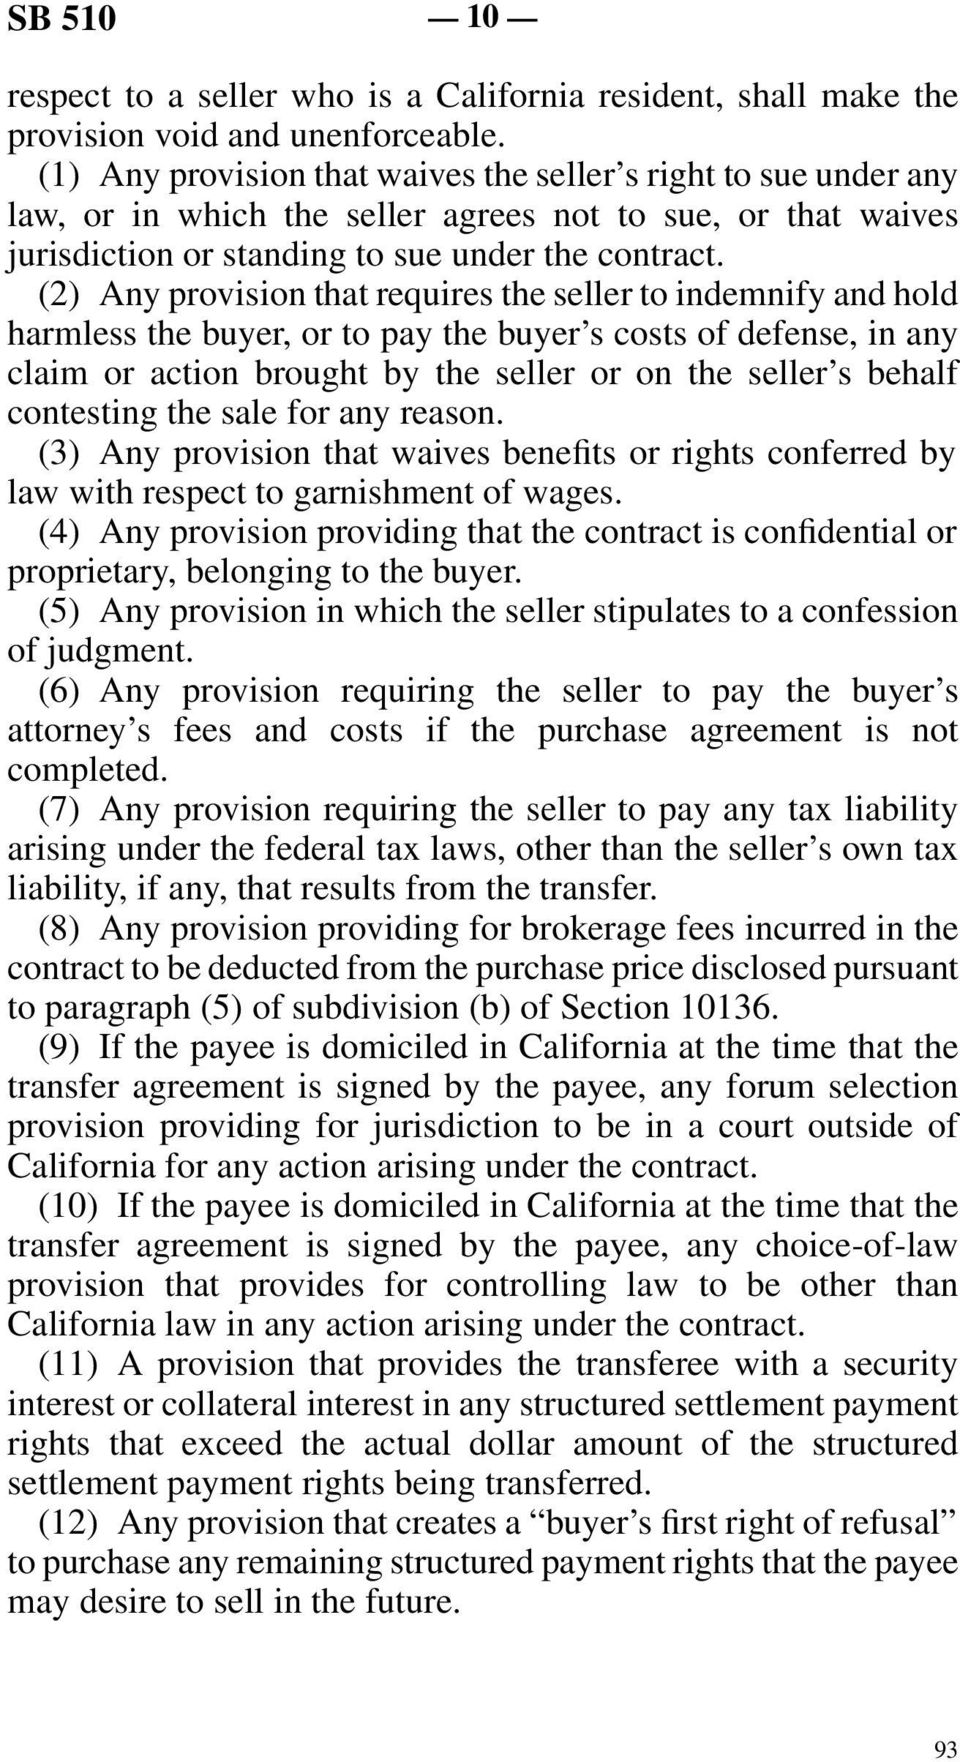 (2) Any provision that requires the seller to indemnify and hold harmless the buyer, or to pay the buyer s costs of defense, in any claim or action brought by the seller or on the seller s behalf